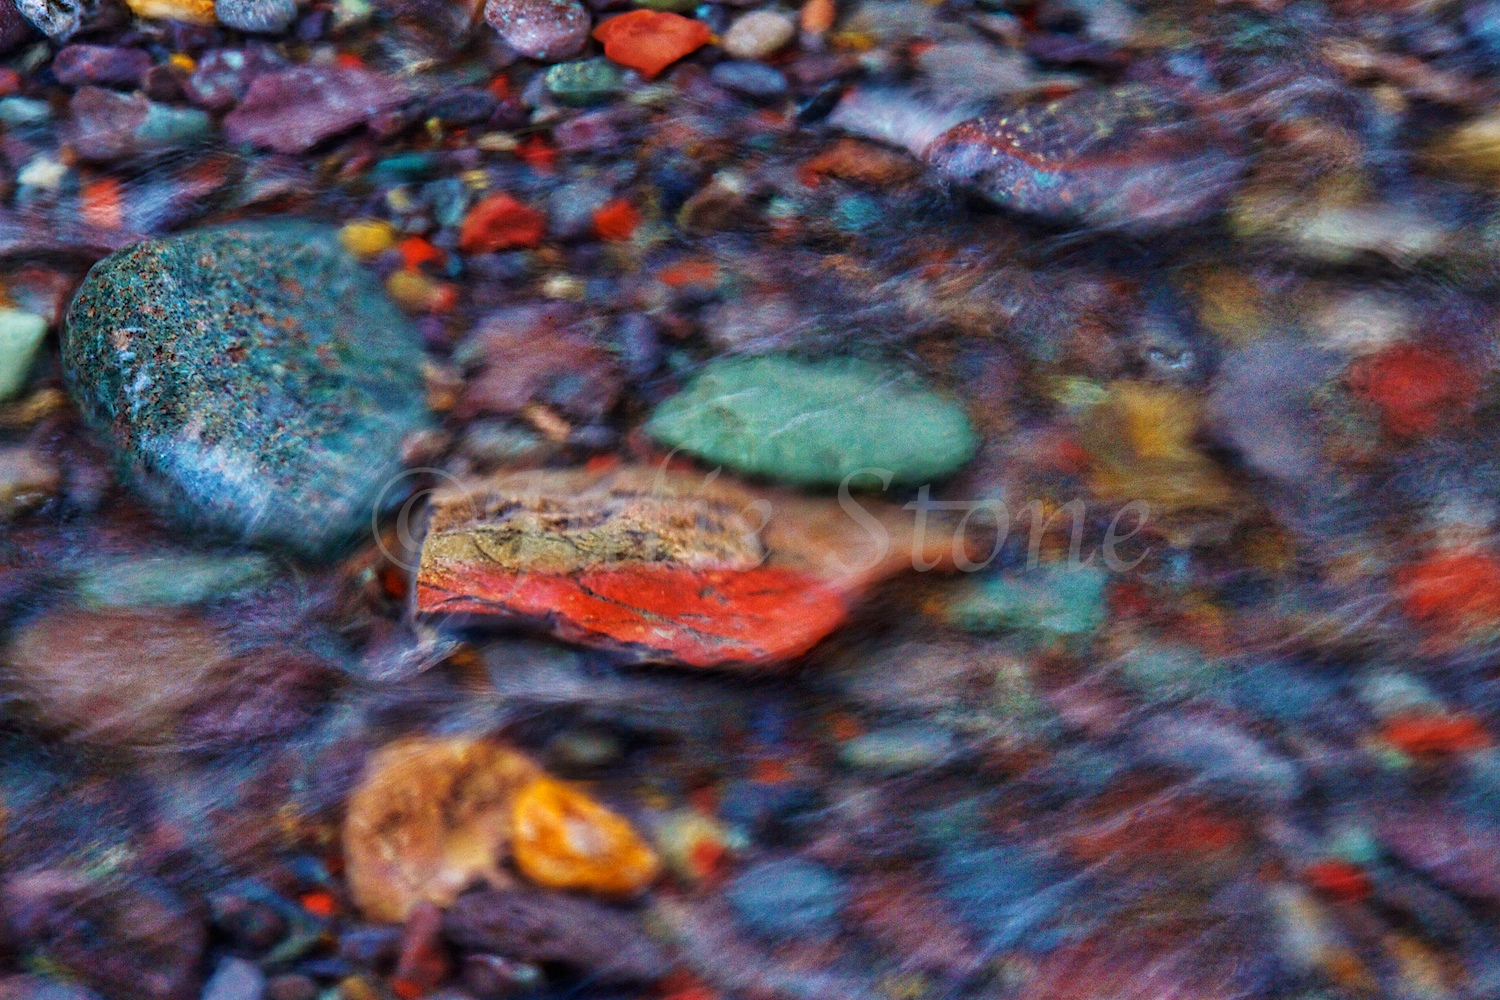 SOUTH MINERAL ROAD RIVER ROCKS 2014